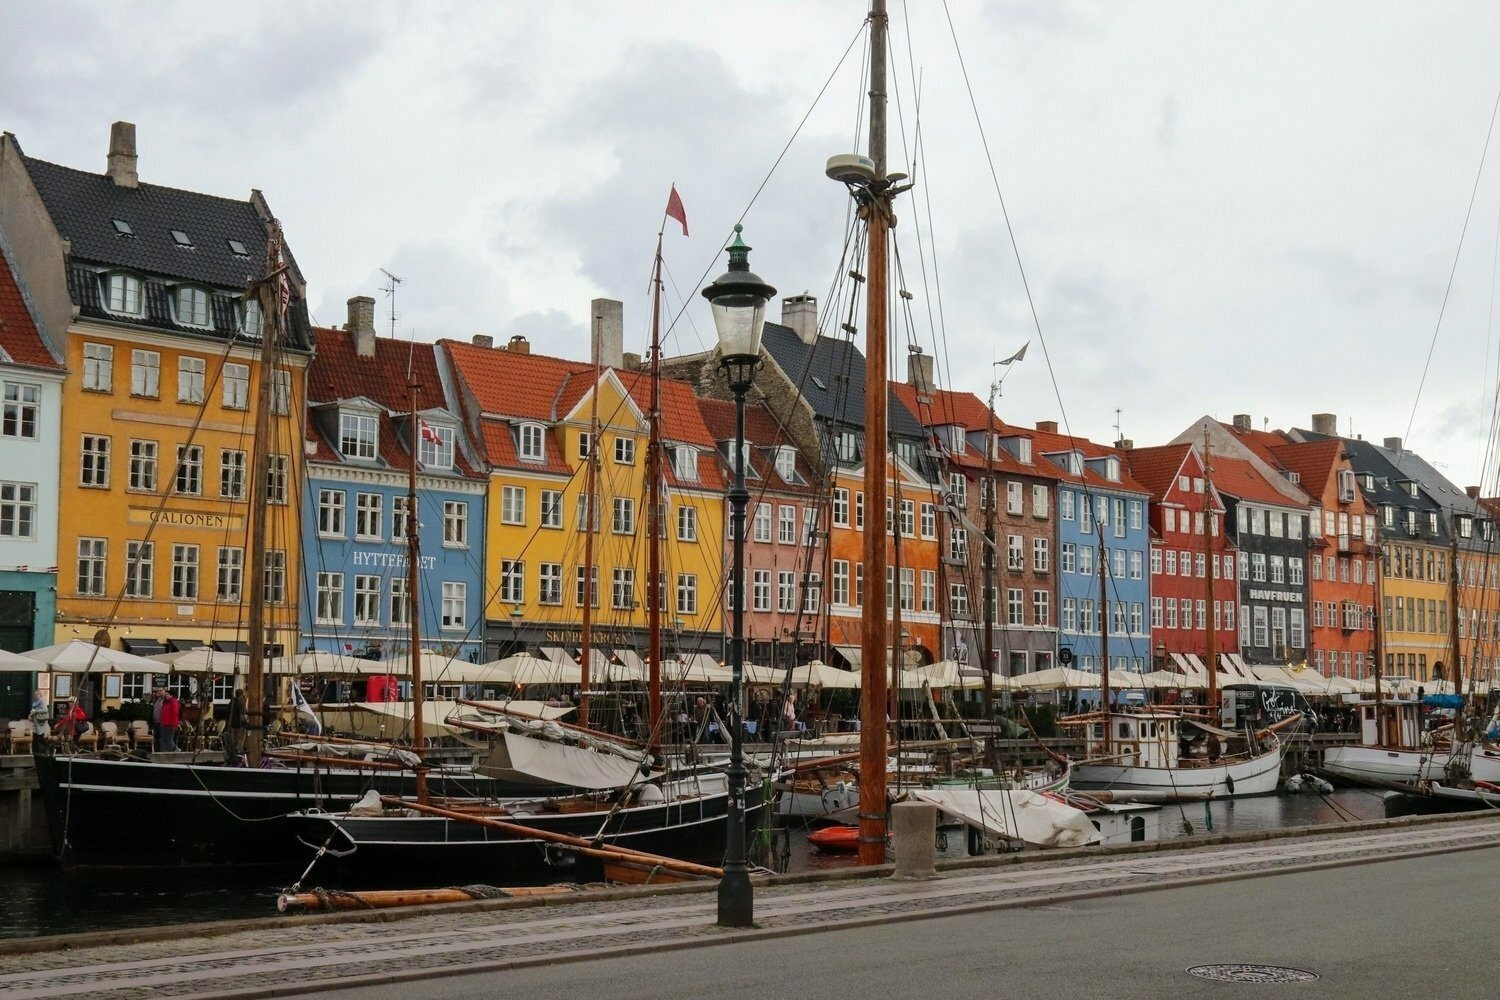 Mastering the art of workplace wellbeing: 5 lessons from Denmark